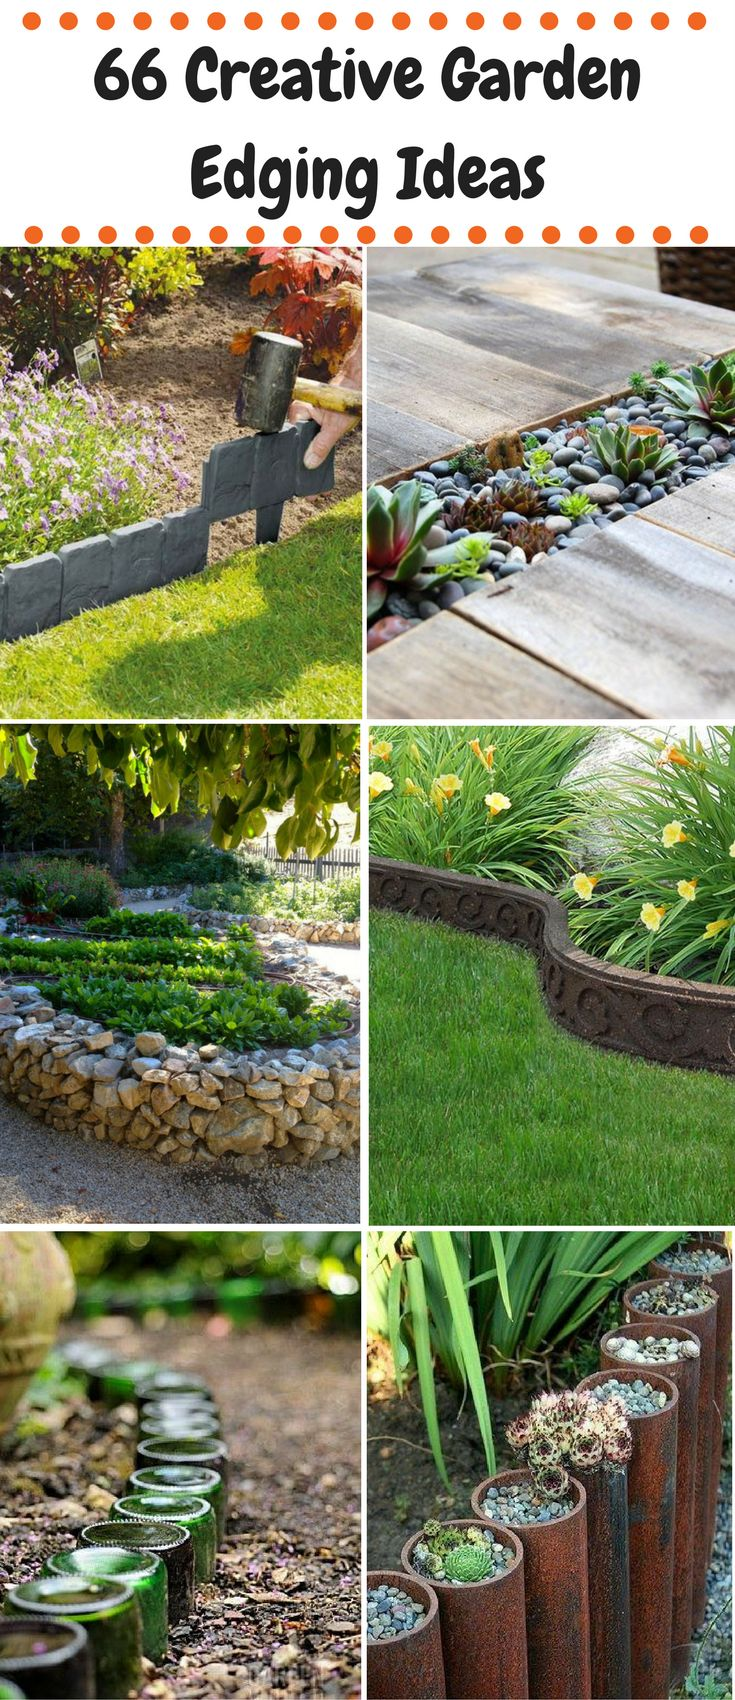 Creative Garden Edging Ideas flower garden edging ideas ortega lawn care 66 Creative Garden Edging Ideas